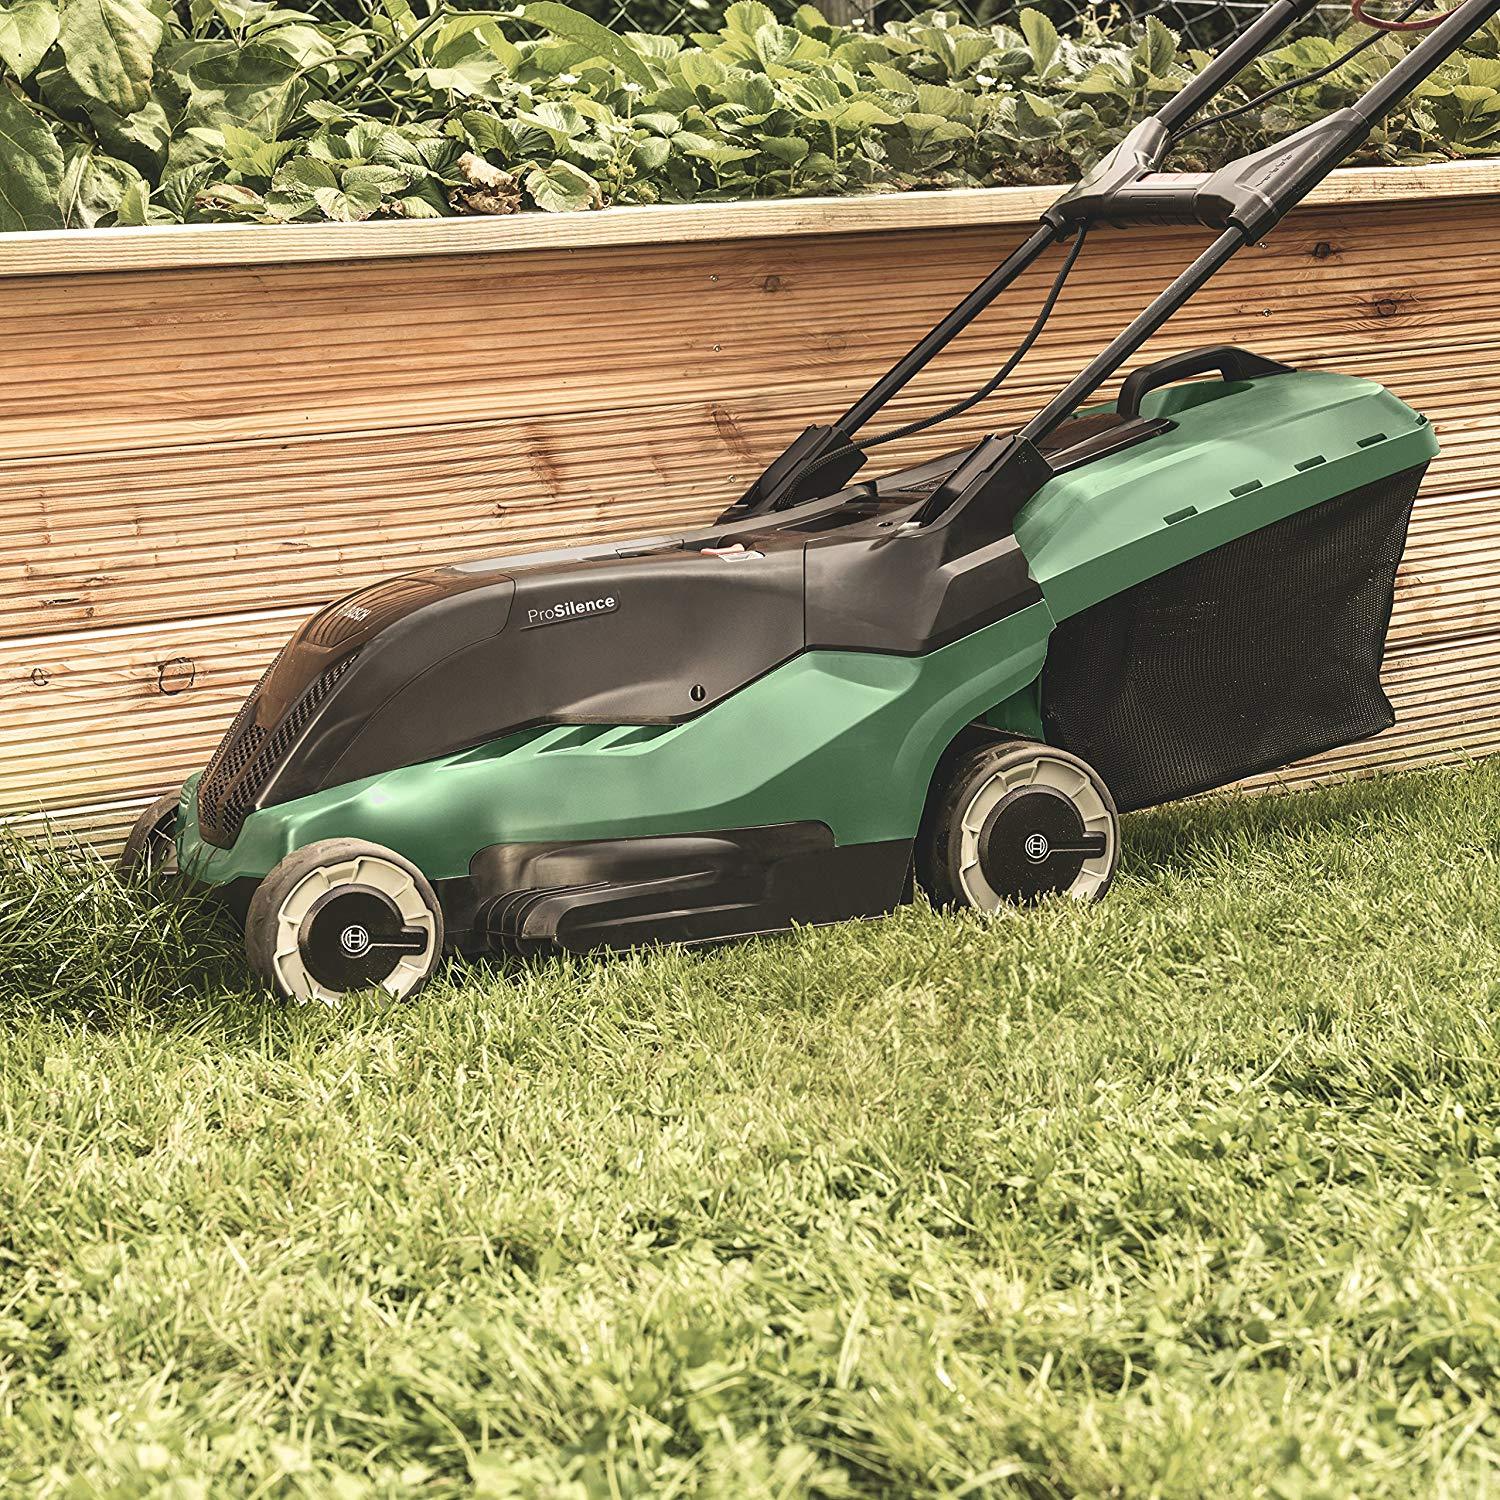 Bosch AdvancedRotak 650 cuts close to edge of grass